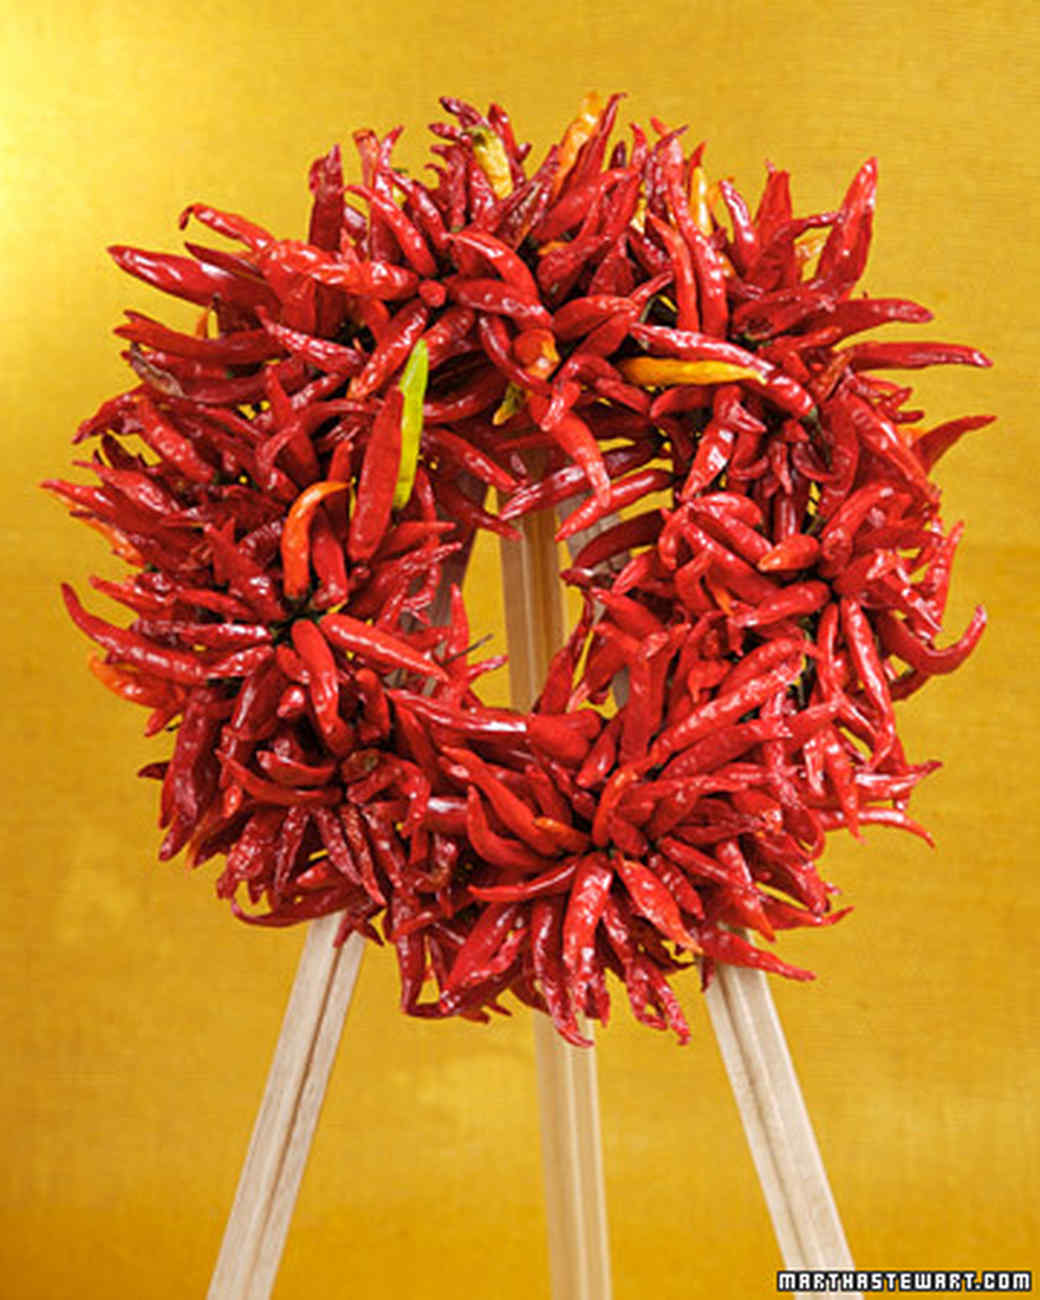 Chile-Pepper Wreath